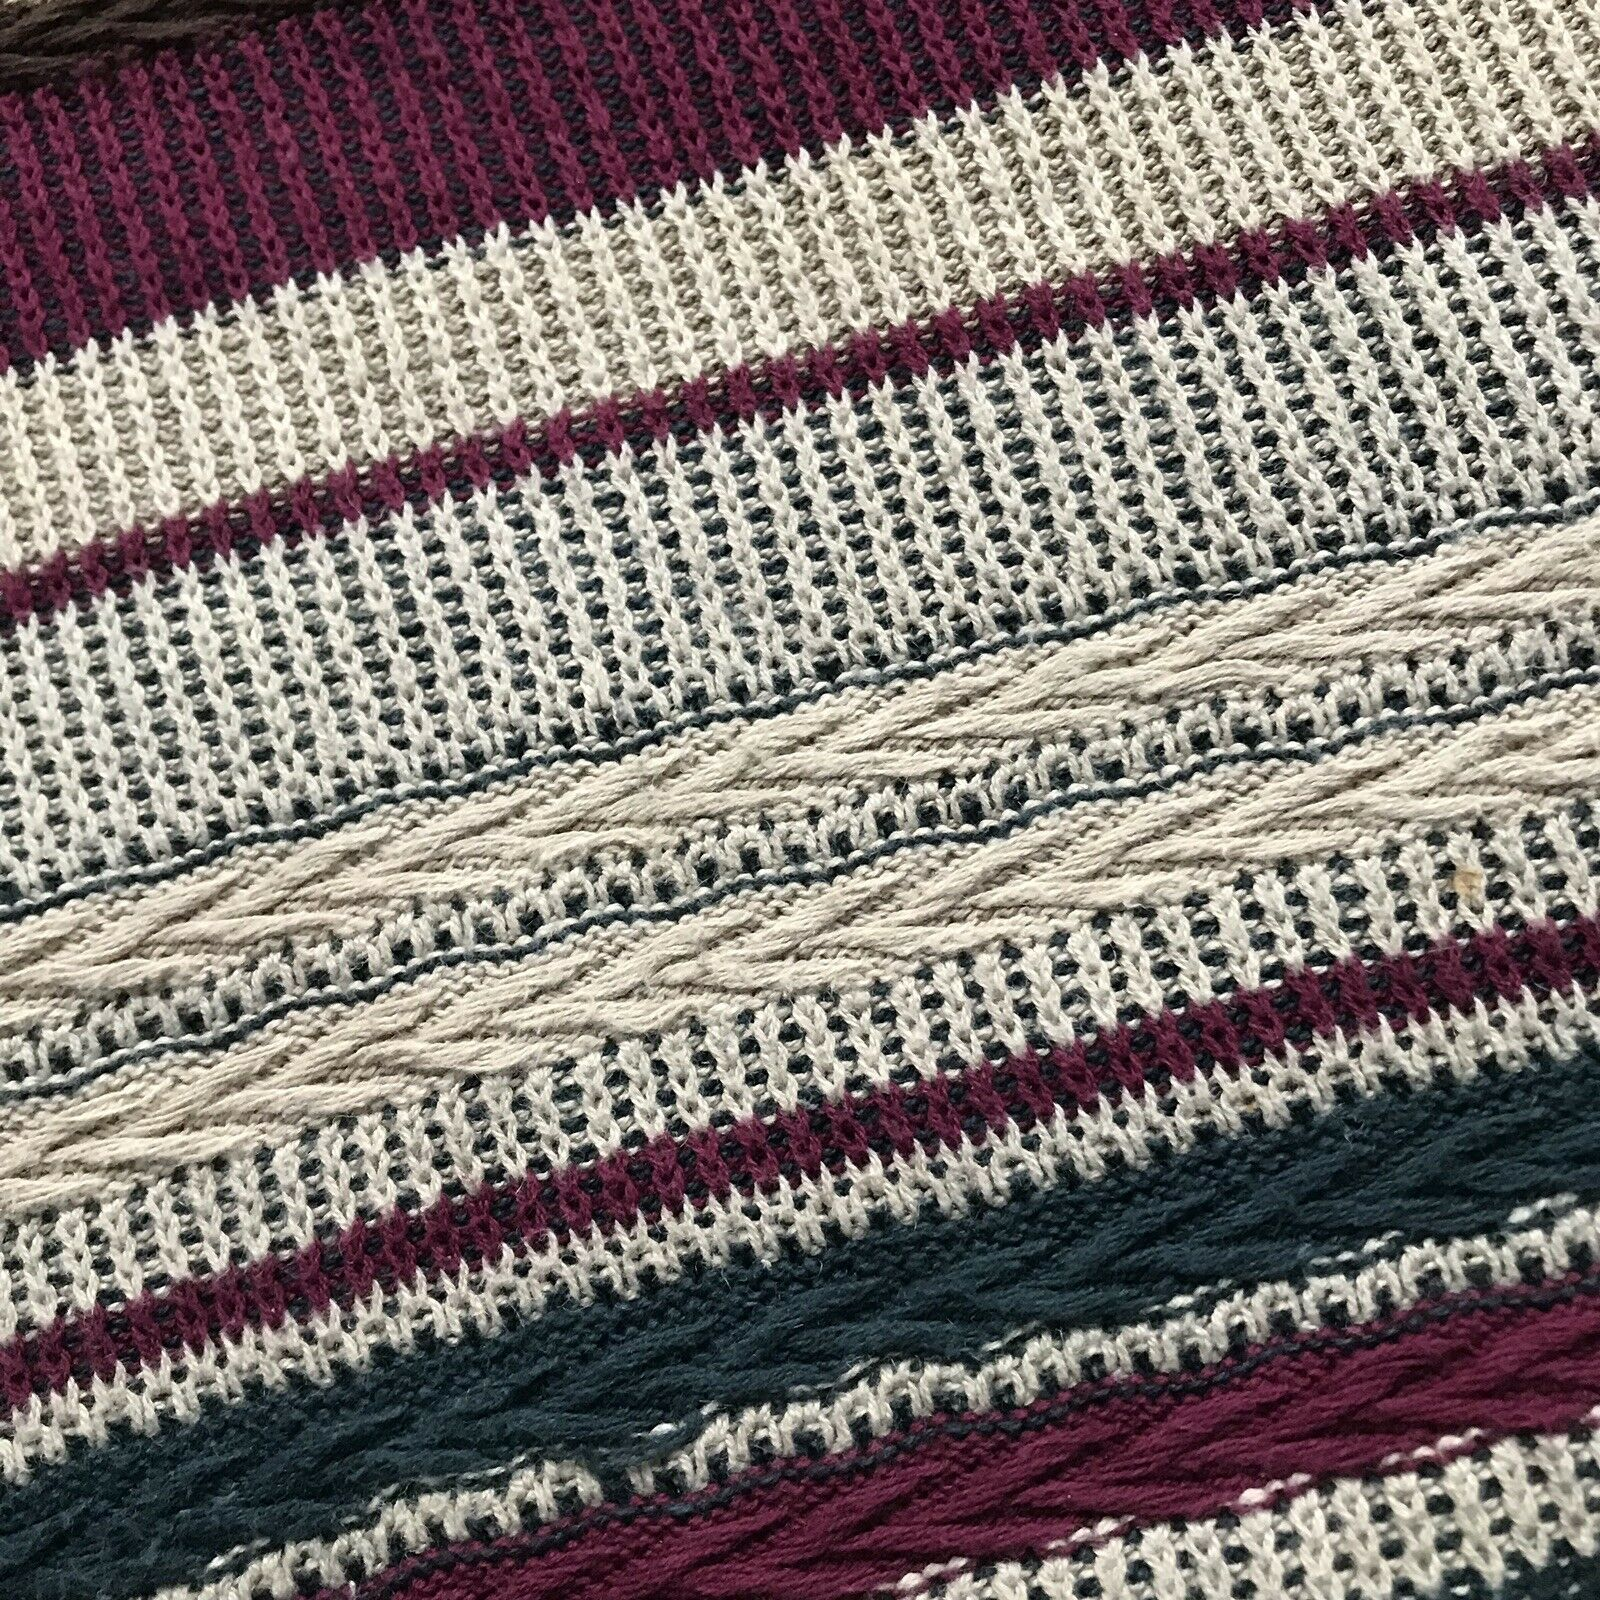 Vintage Textured Striped Knit Abstract Sweater - image 2